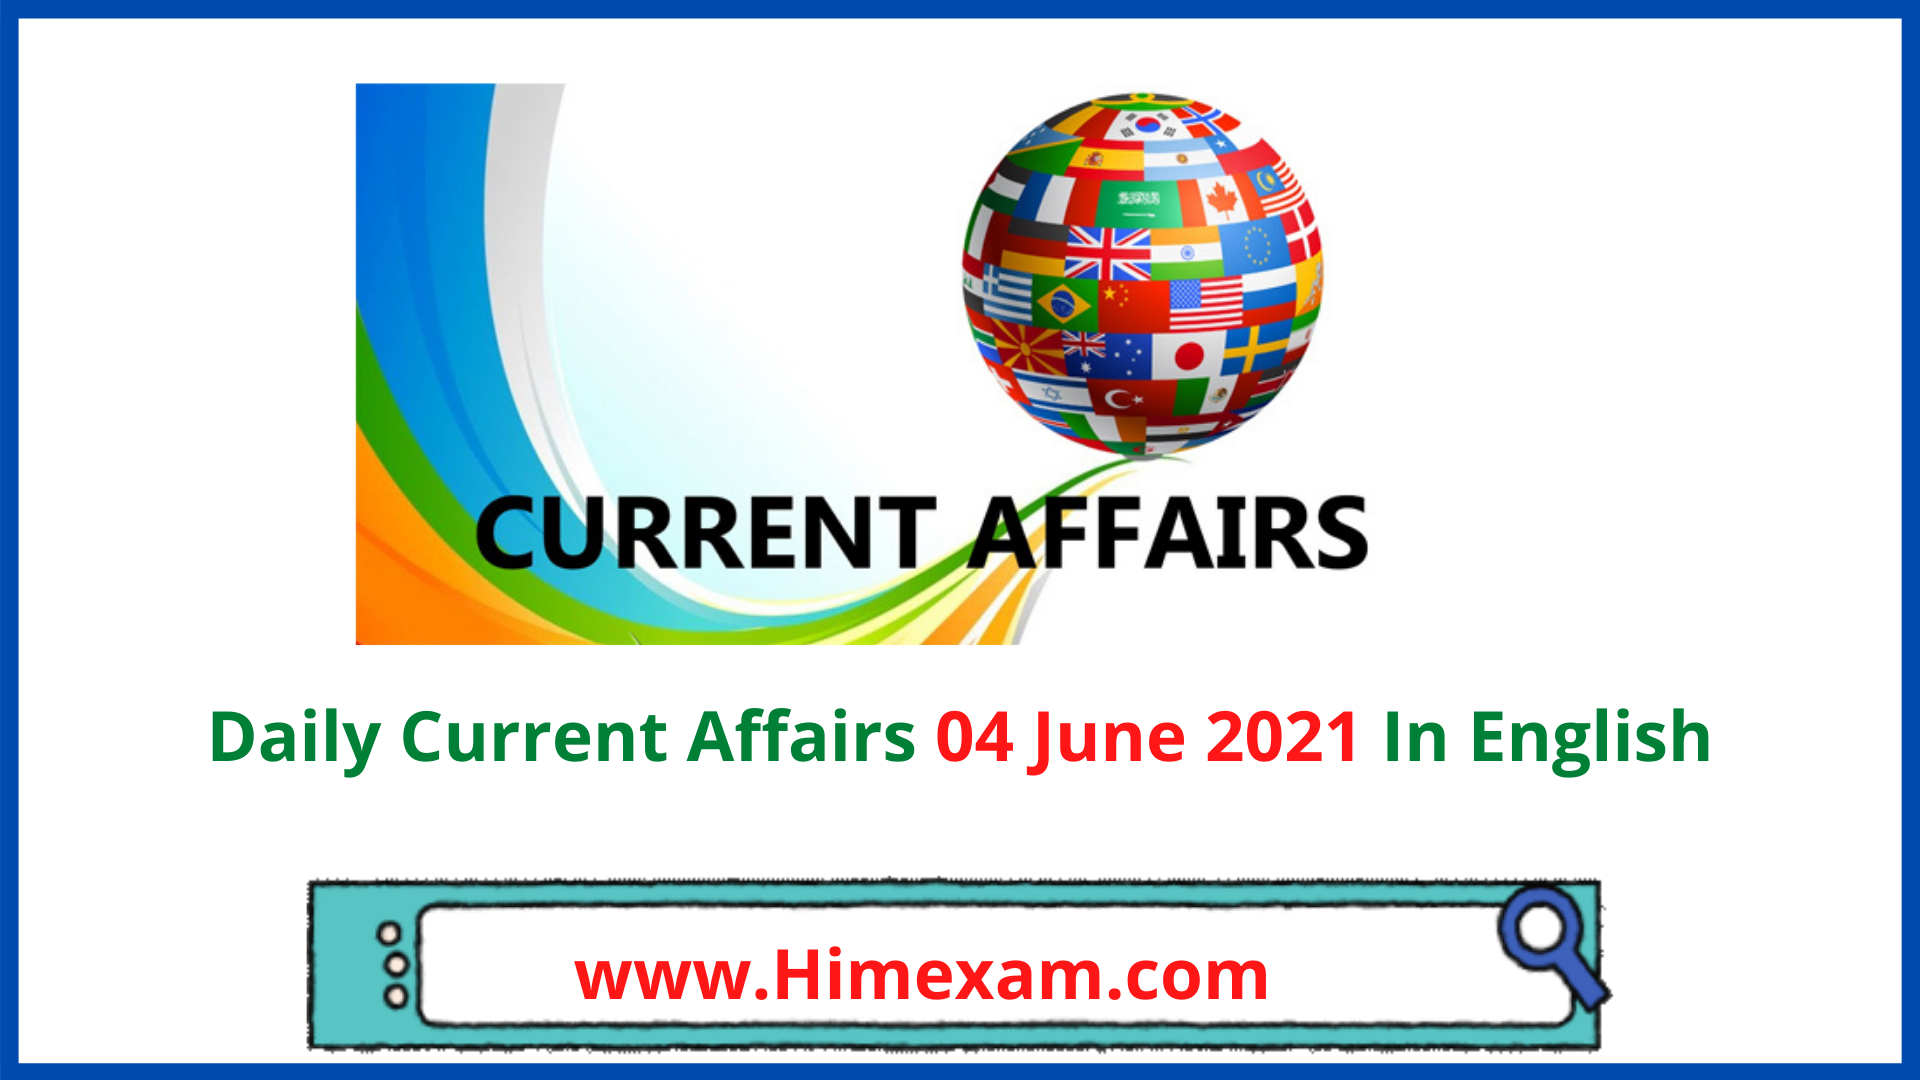 Daily Current Affairs 04 June 2021 In English